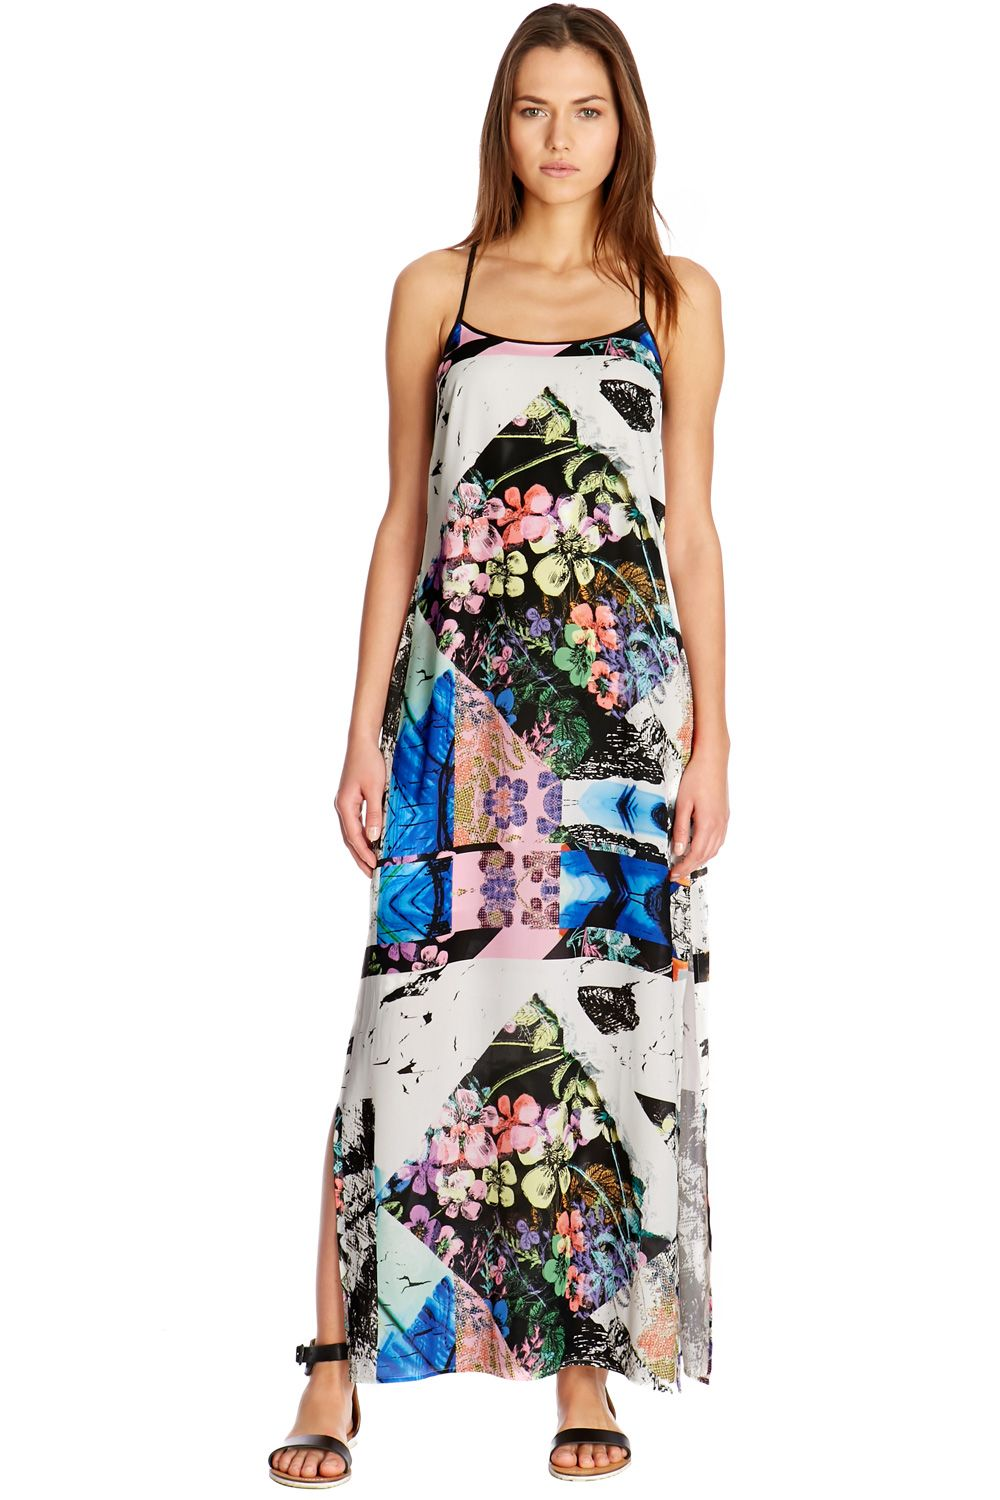 Collage floral maxi dress